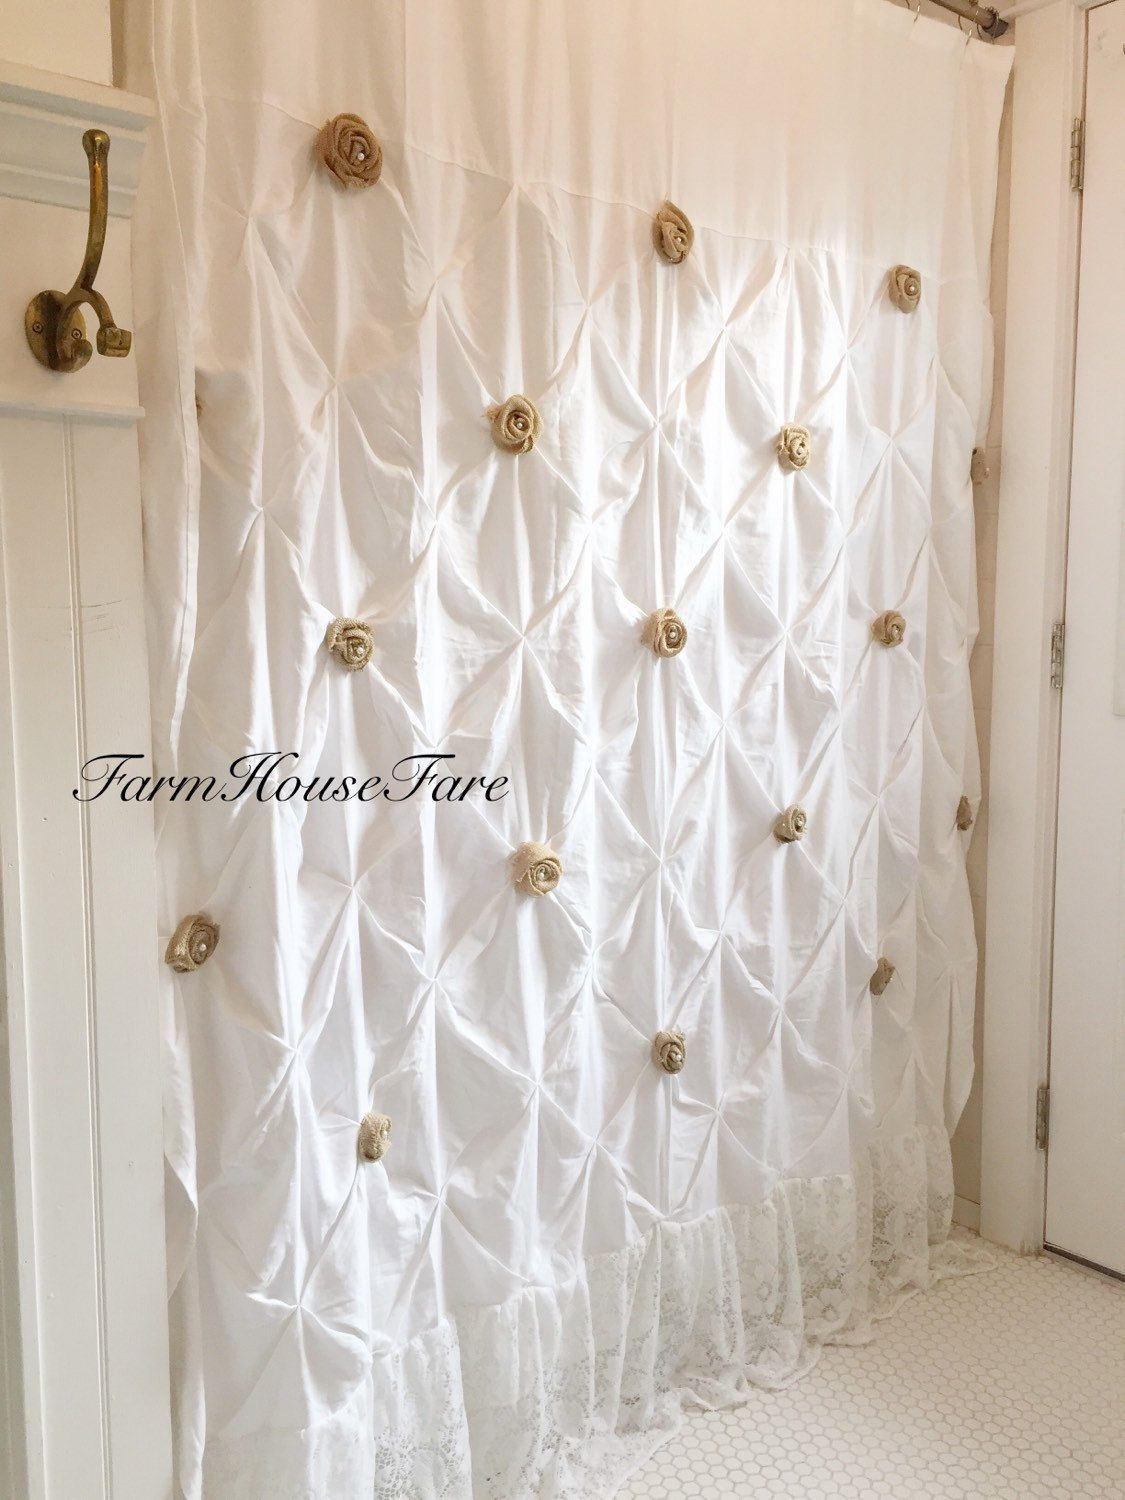 Burlap Ruffle Shower Curtain White Cotton with Handmade Rosettes and ...